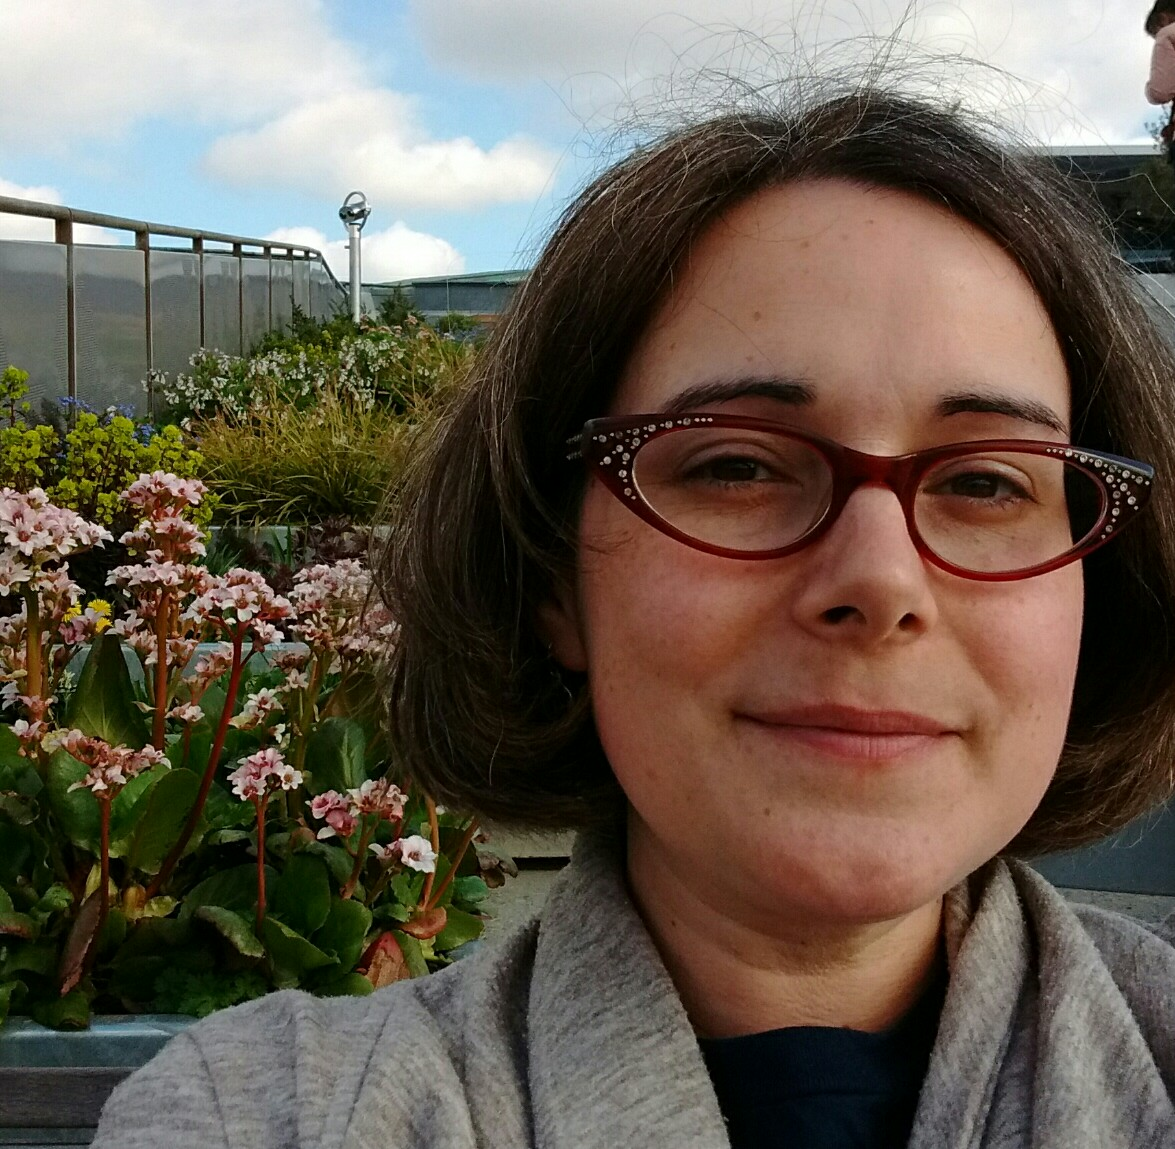 A Woman with glasses and brown hair with flowers and clouds in the background